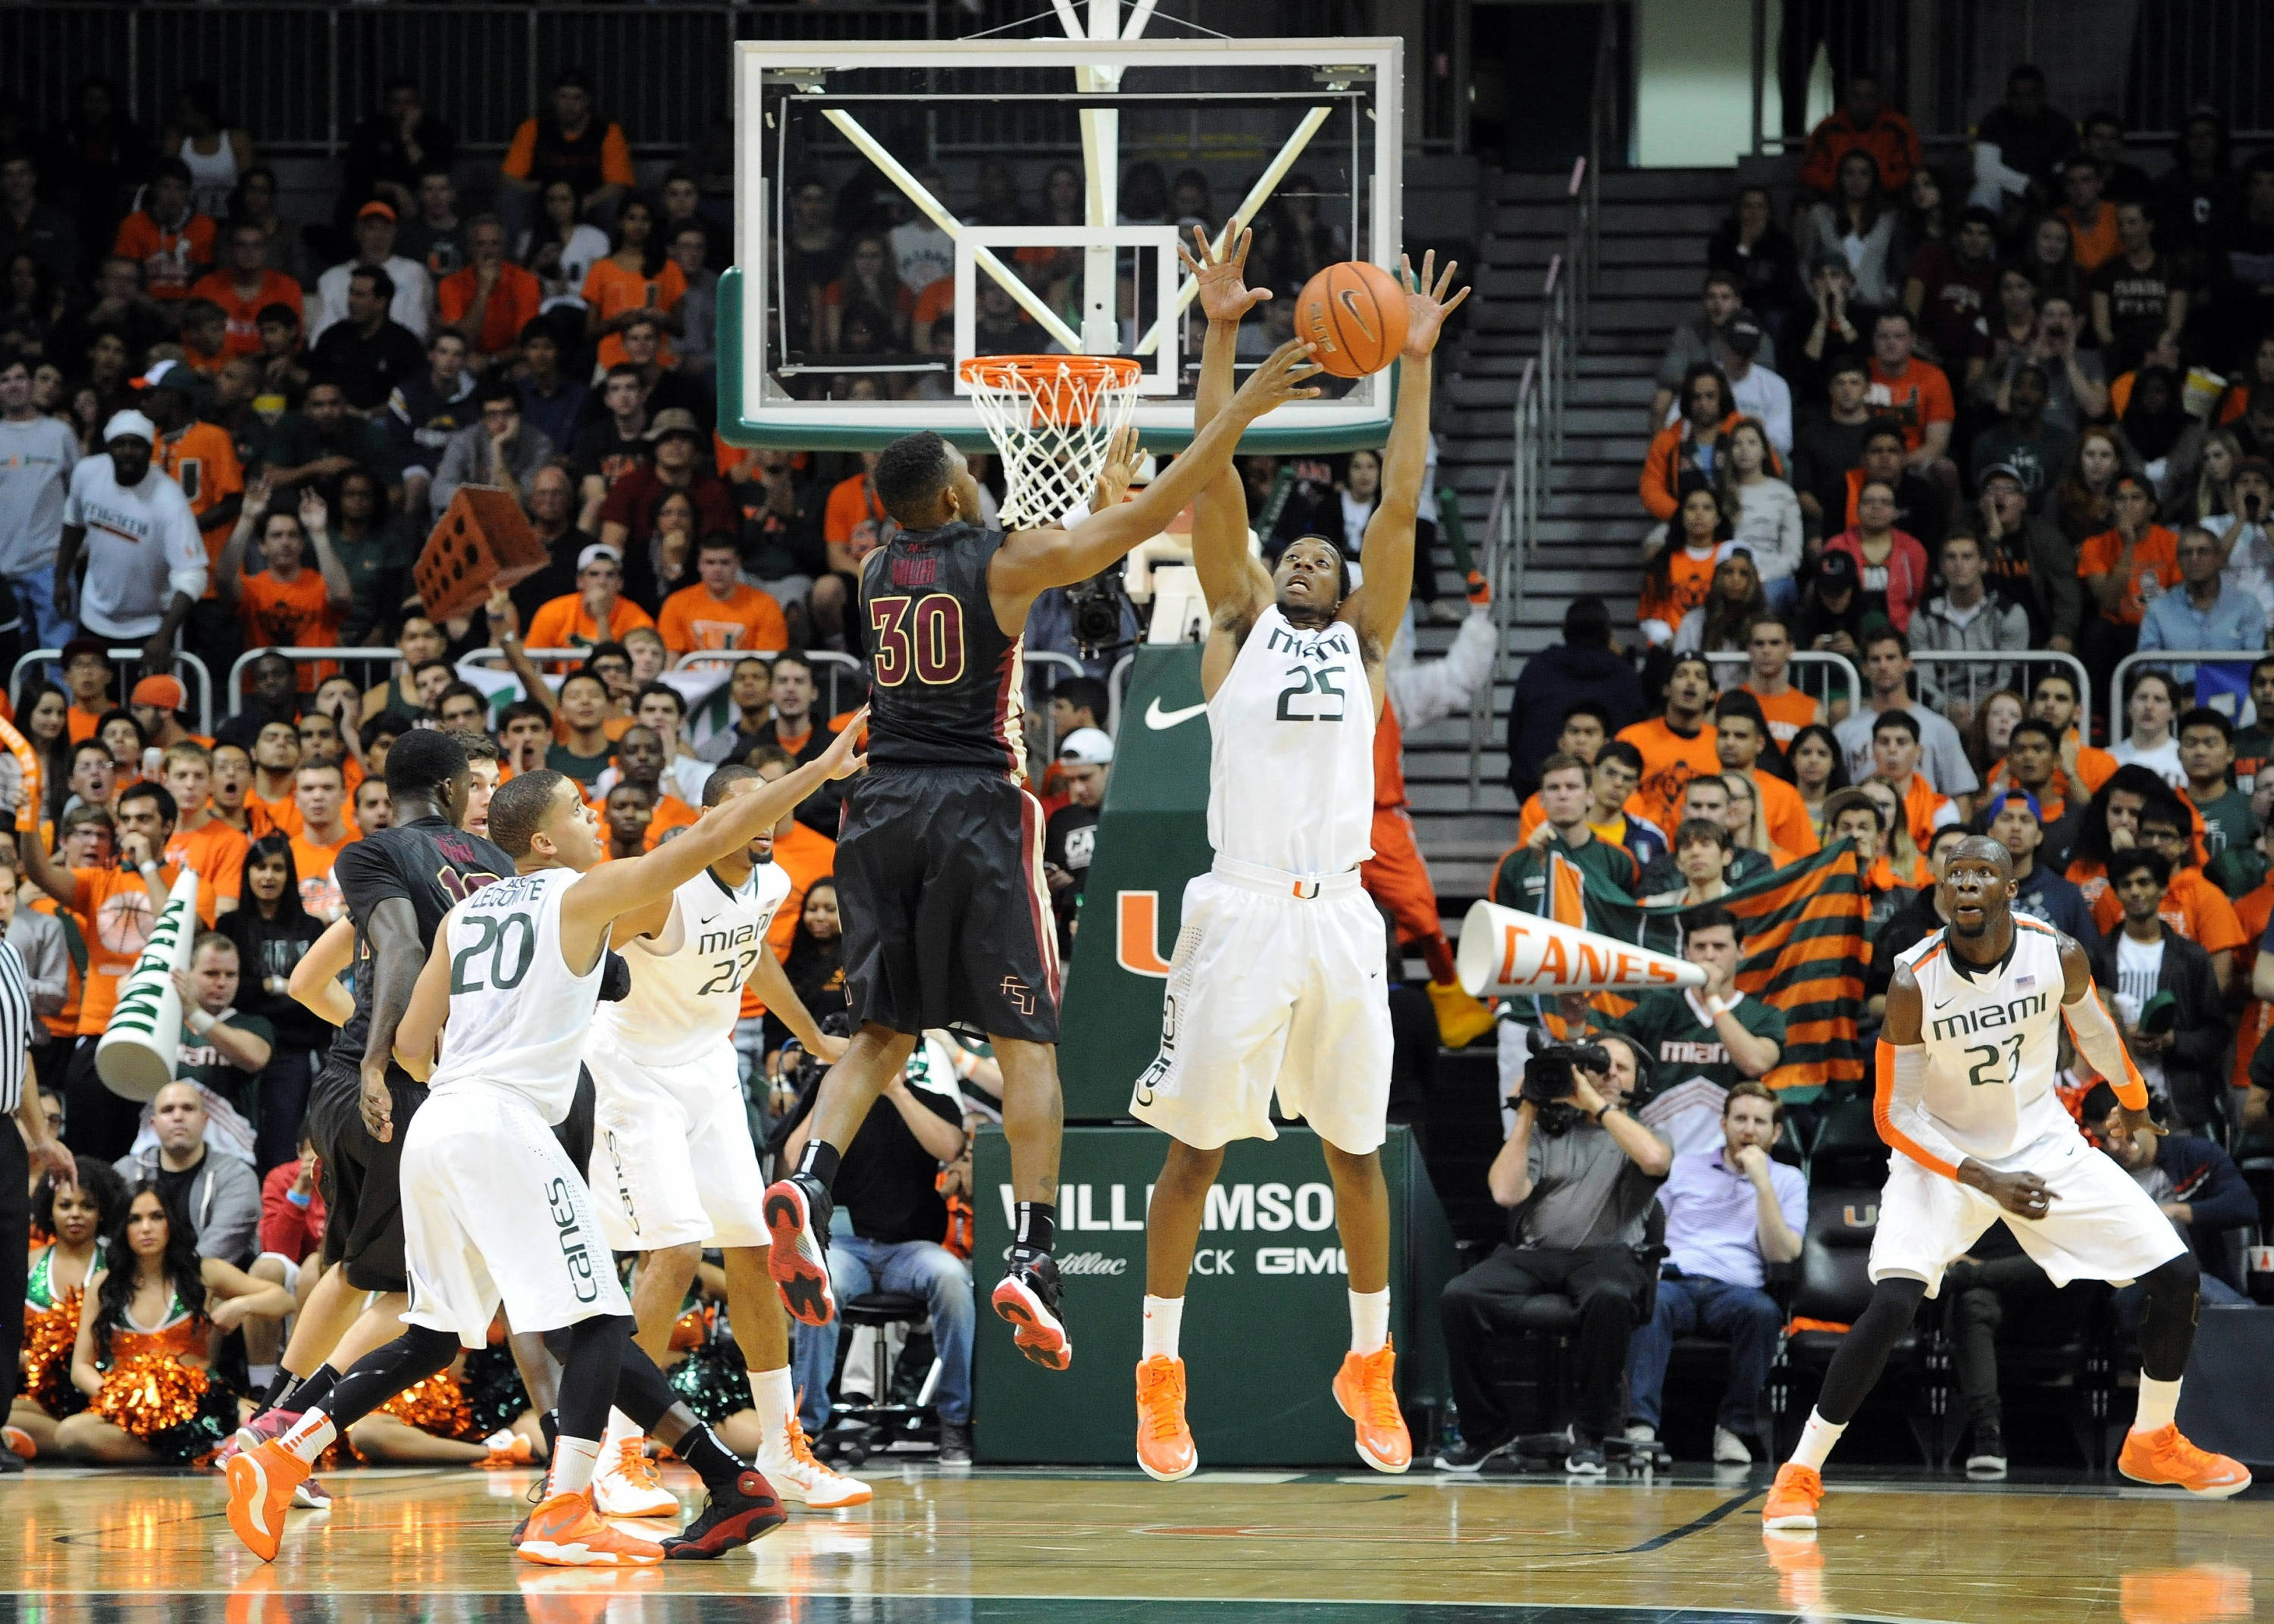 Jan 15, 2014; Coral Gables, FL, USA; Seminoles guard Ian Miller (30) is pressured by Miami Hurricanes guard Garrius Adams (25) during the second half. Steve Mitchell-USA TODAY Sports